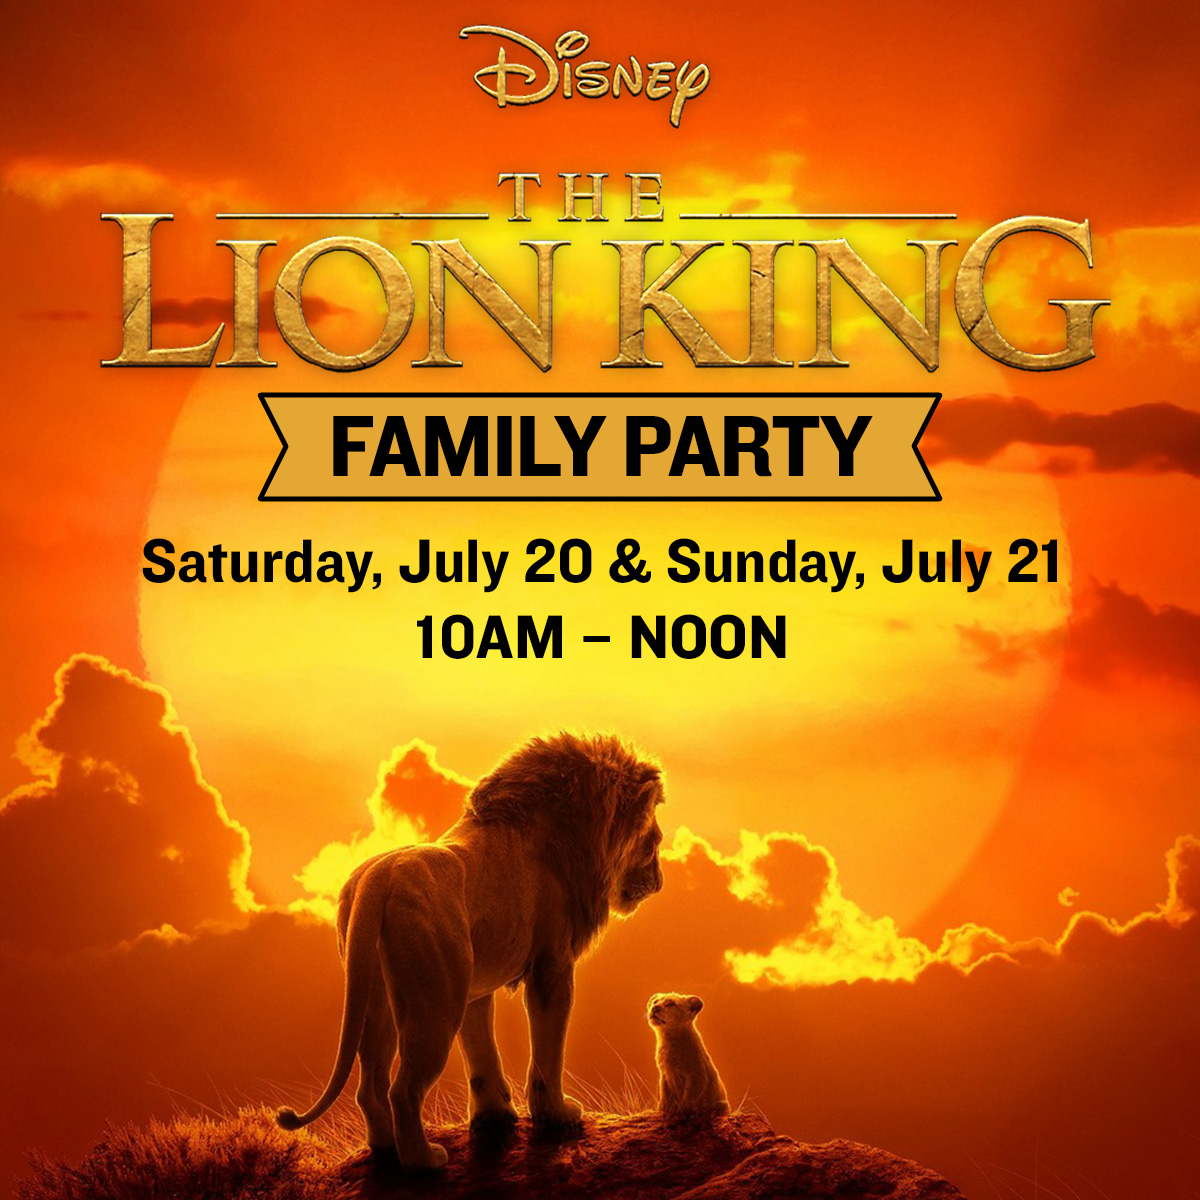 The Lion King Free Family Party